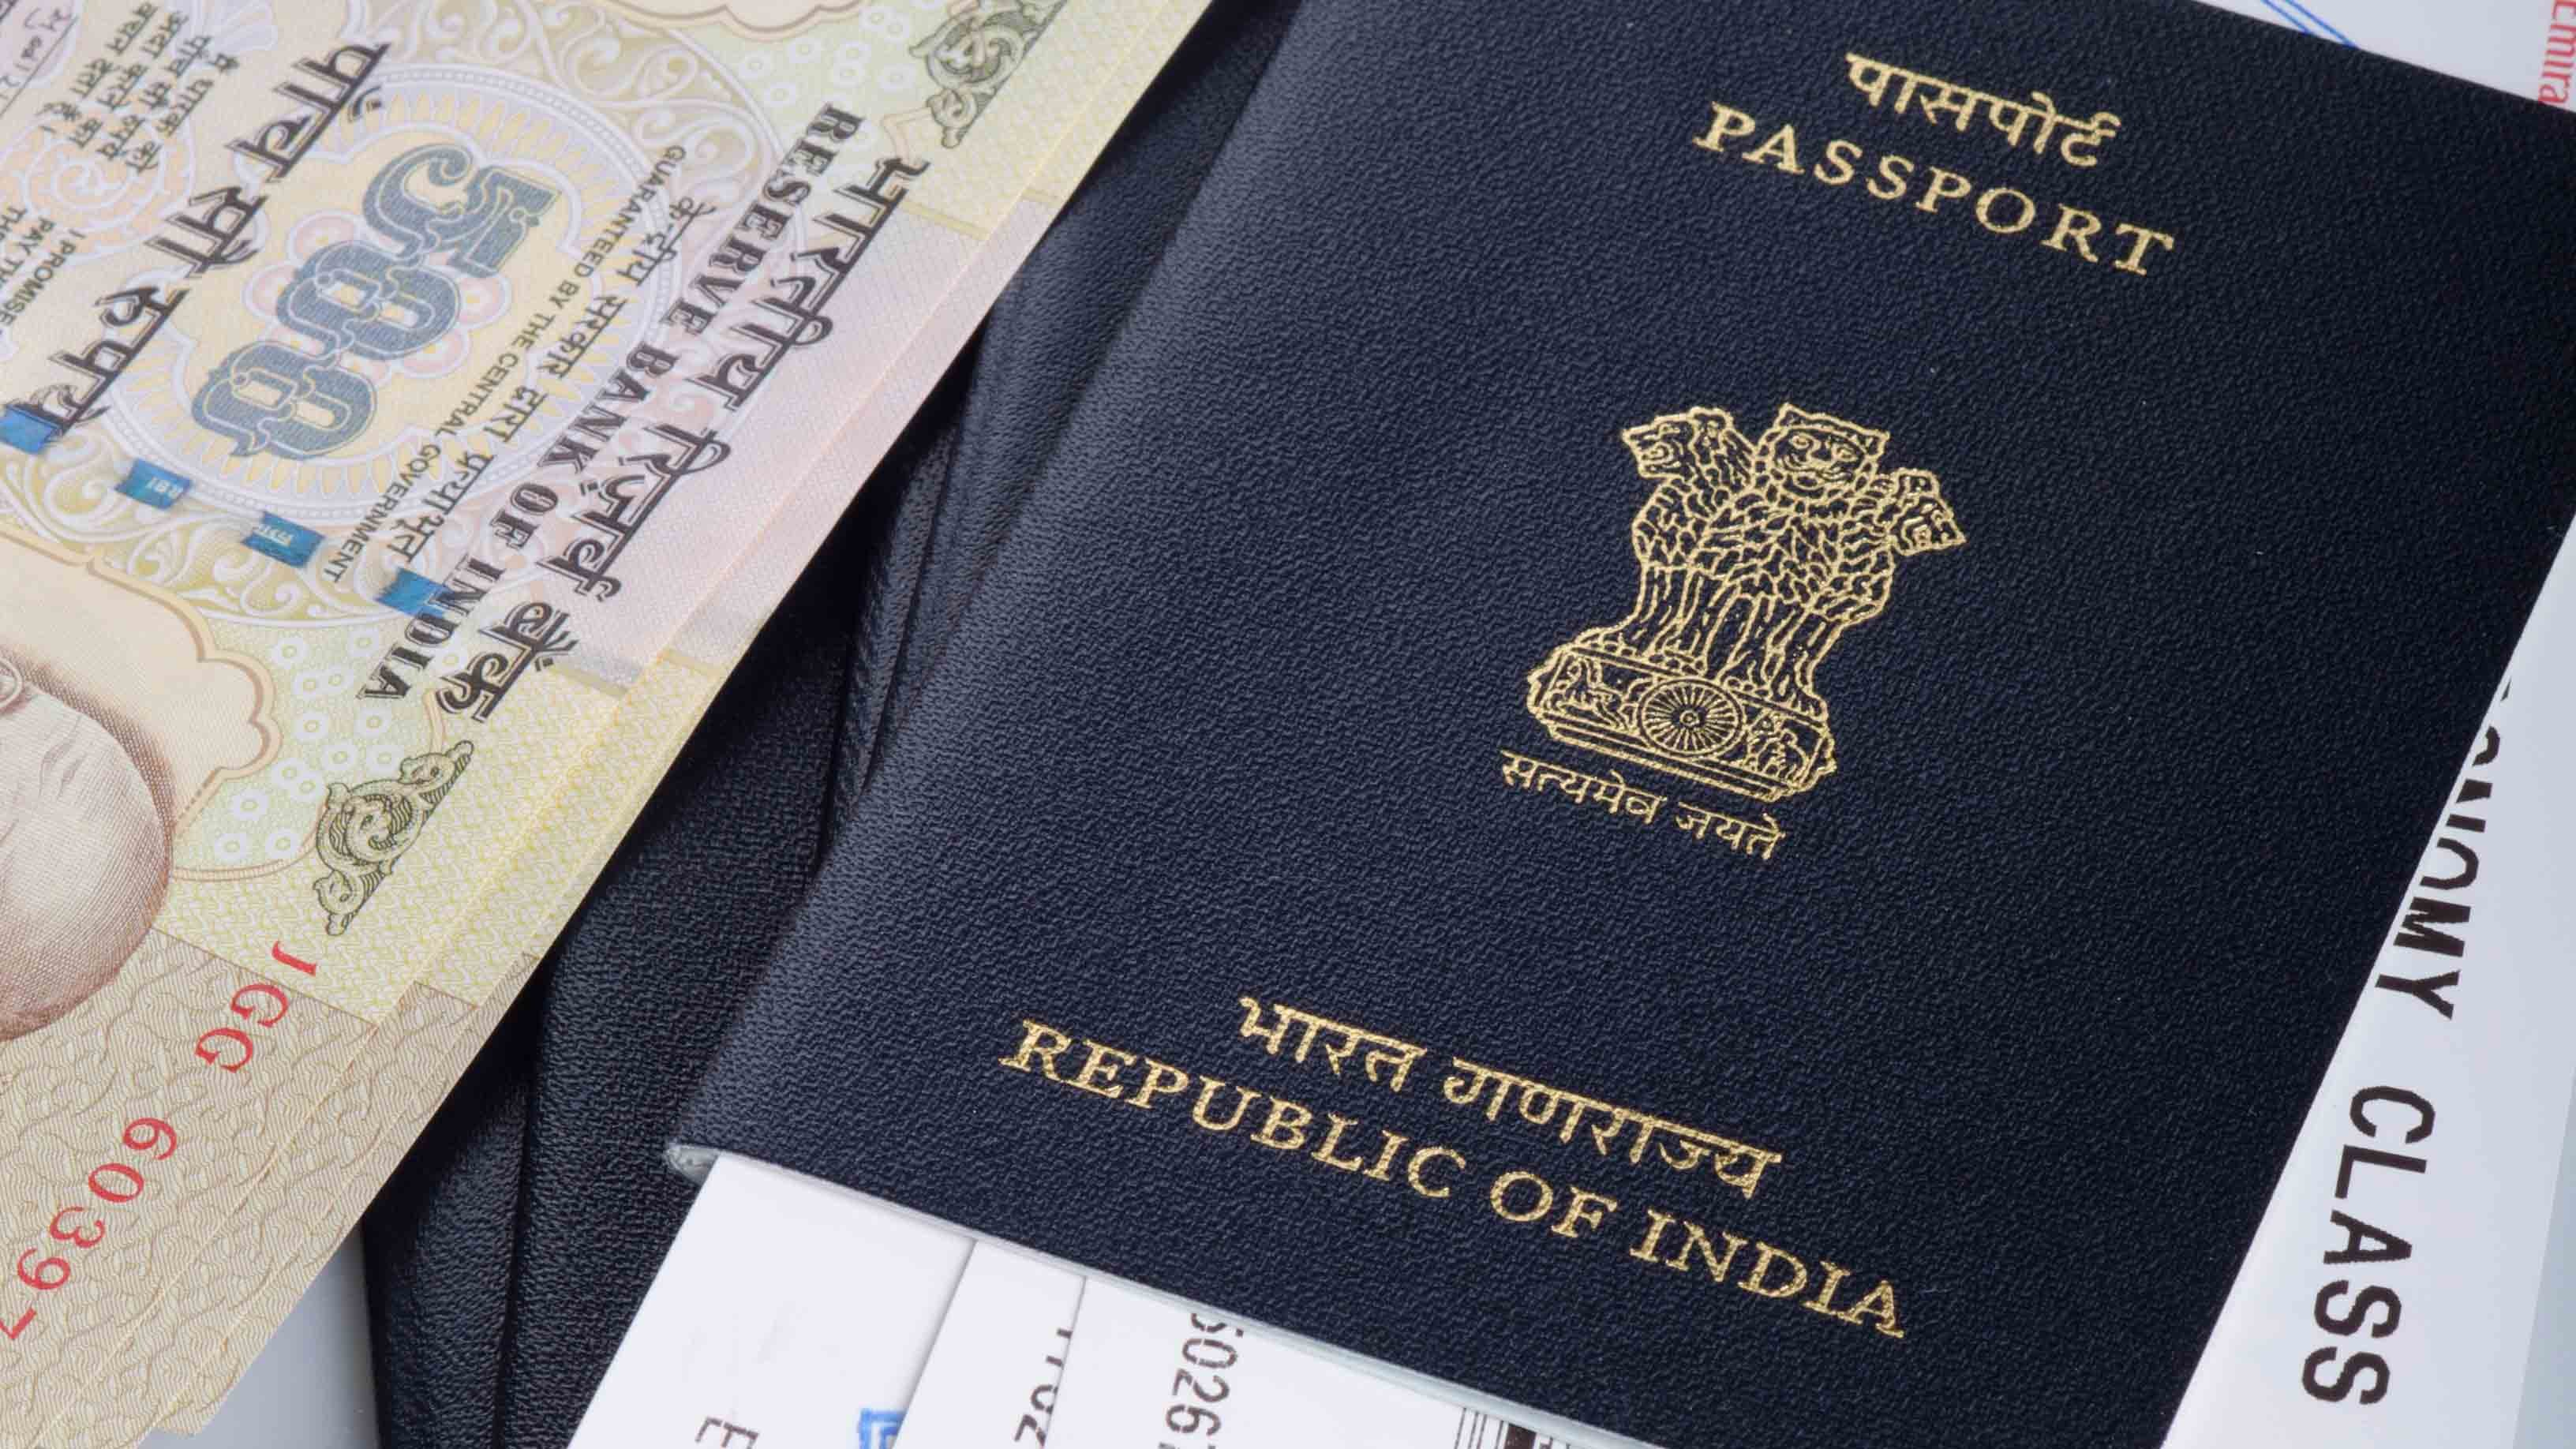 They've Released A List Of The Most Powerful Passports In The World India Hasn't Scored Too Well